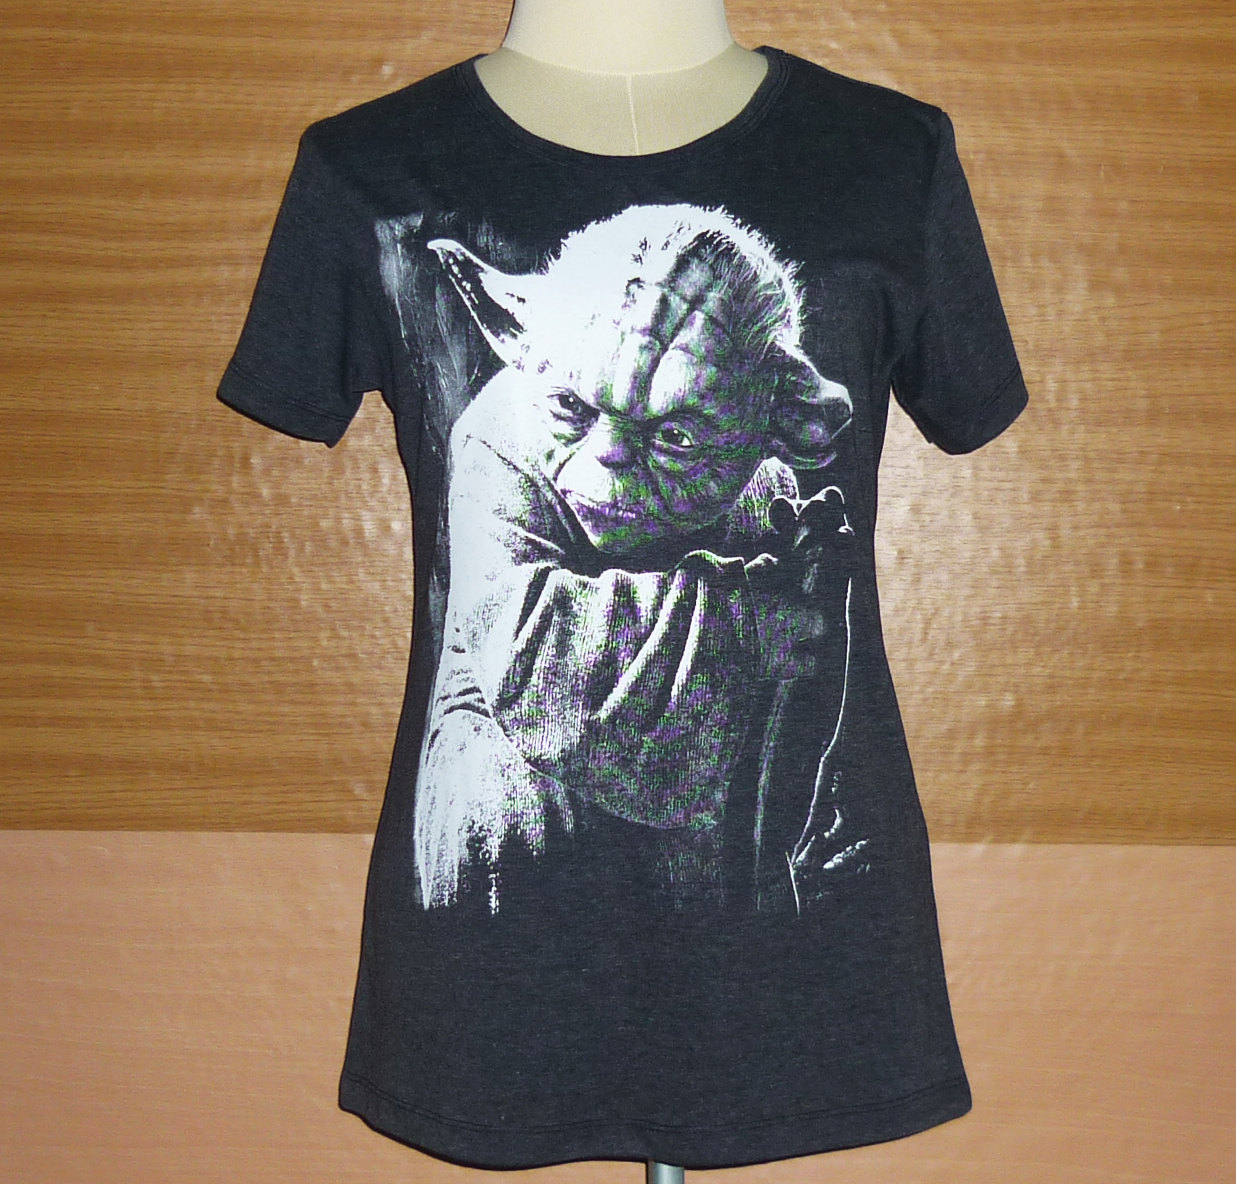 Shirt yoda jedi ,shirt lady, shirt teen girls,tshirt retro rock punk pop short sleeve tee women size s m l xl